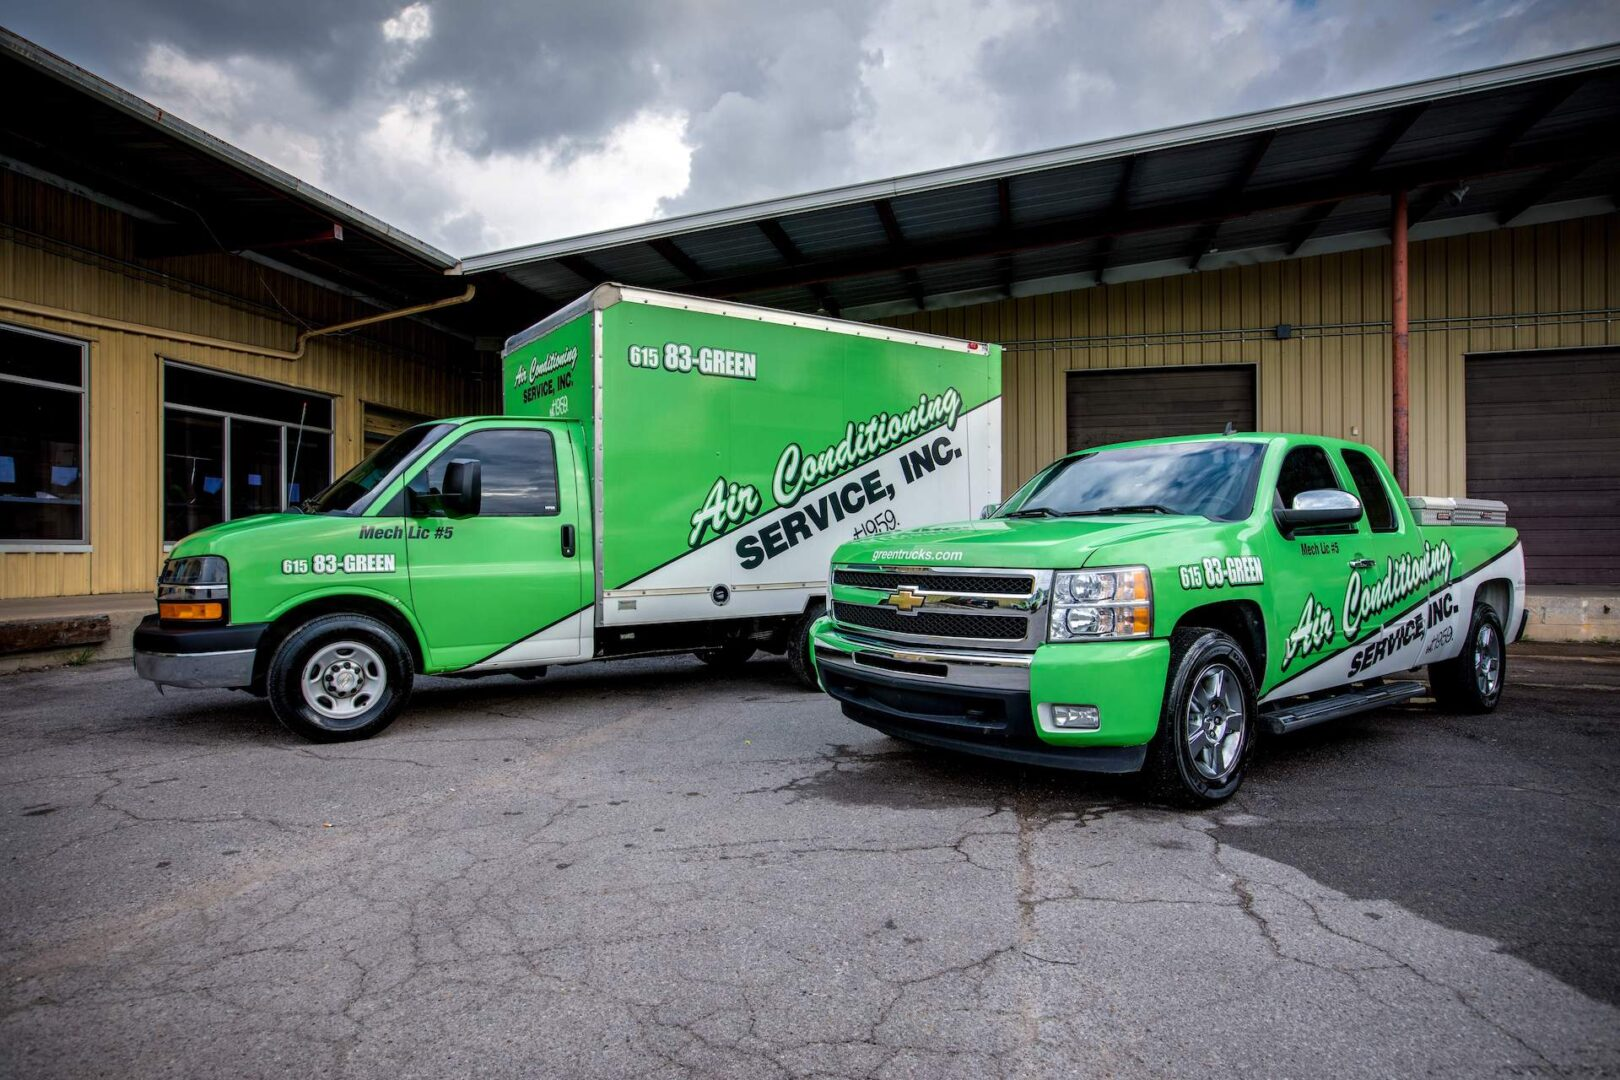 HVAC Experts in the Green Truck and Van for Nashville HVAC Install, HVAC Repair, and Duct Cleaning